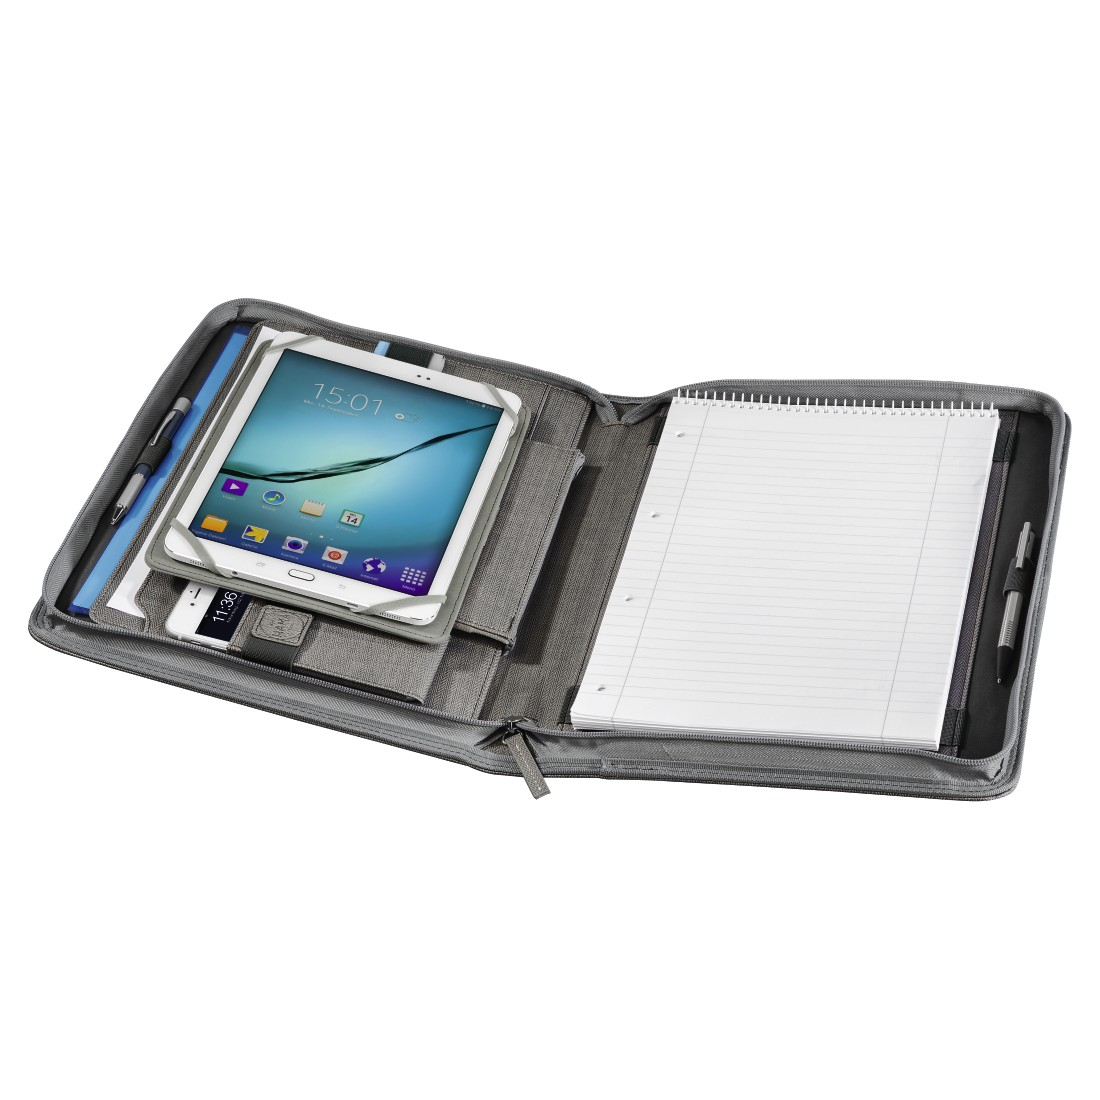 awx3 High-Res Appliance 3 - Hama est. 1923, Hannover Tablet Organizer A4, light grey